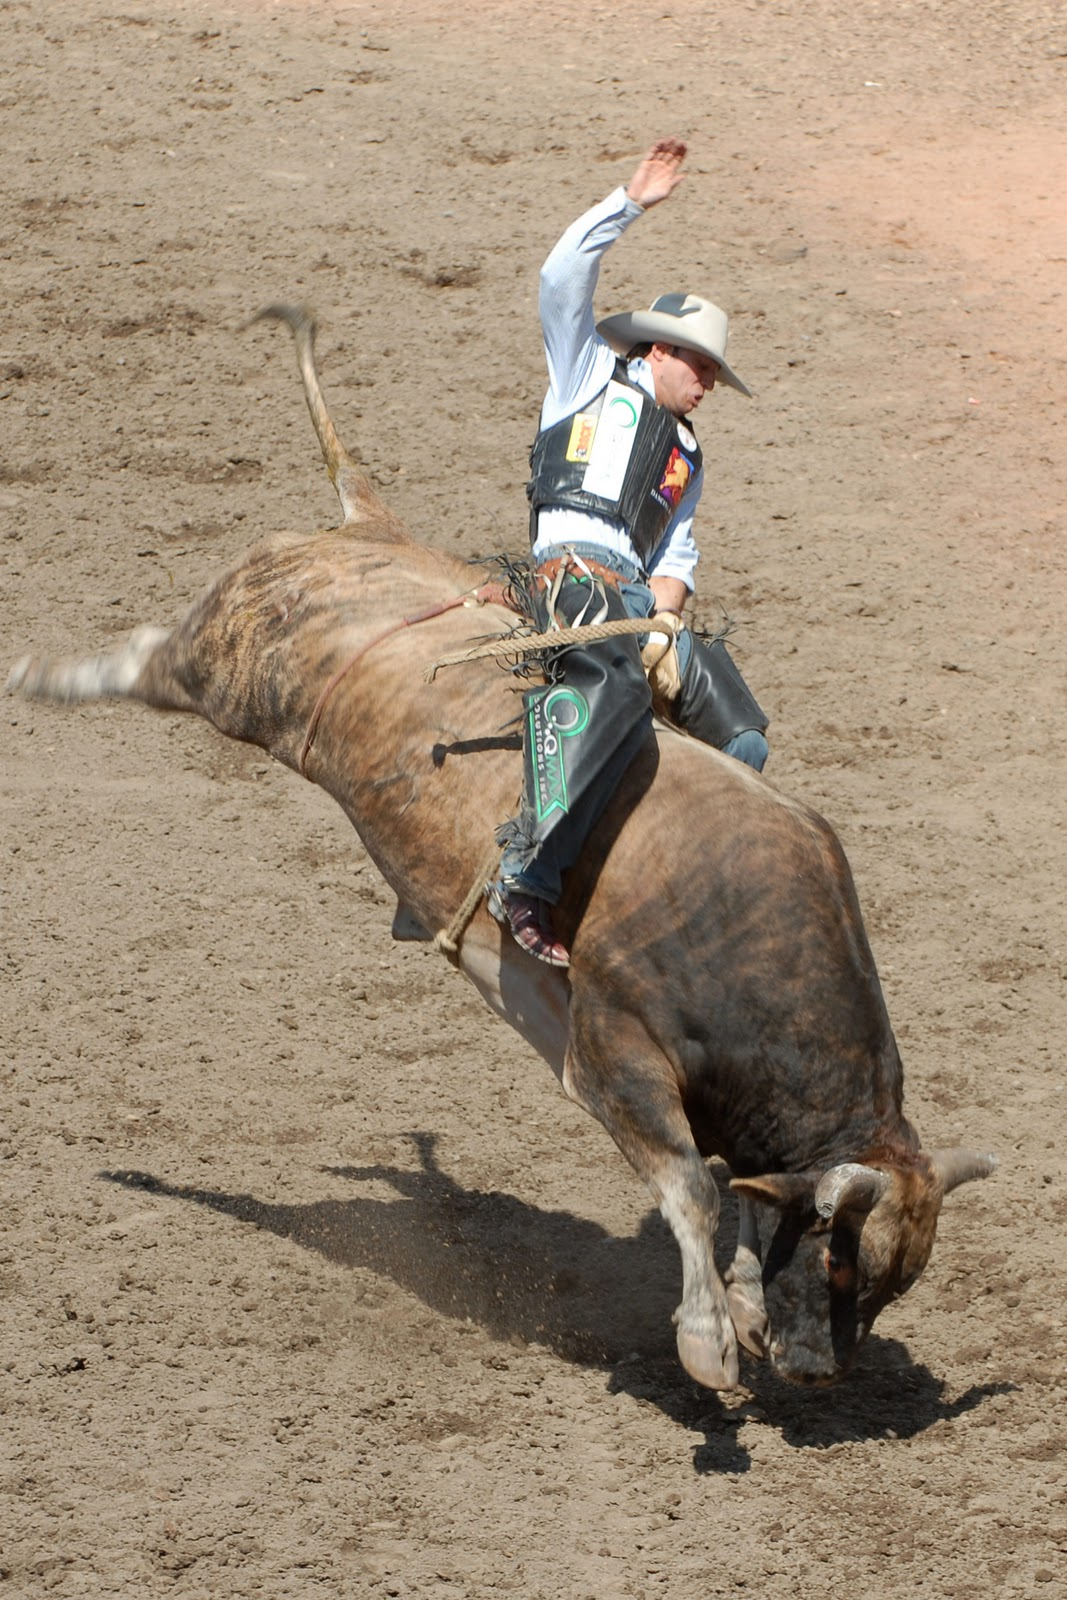 rodeo events Events - mesquite championship rodeo | private events the 8-second club and mesquite arena have quickly become the newest destination for corporate events, private events and weddings in north texas.